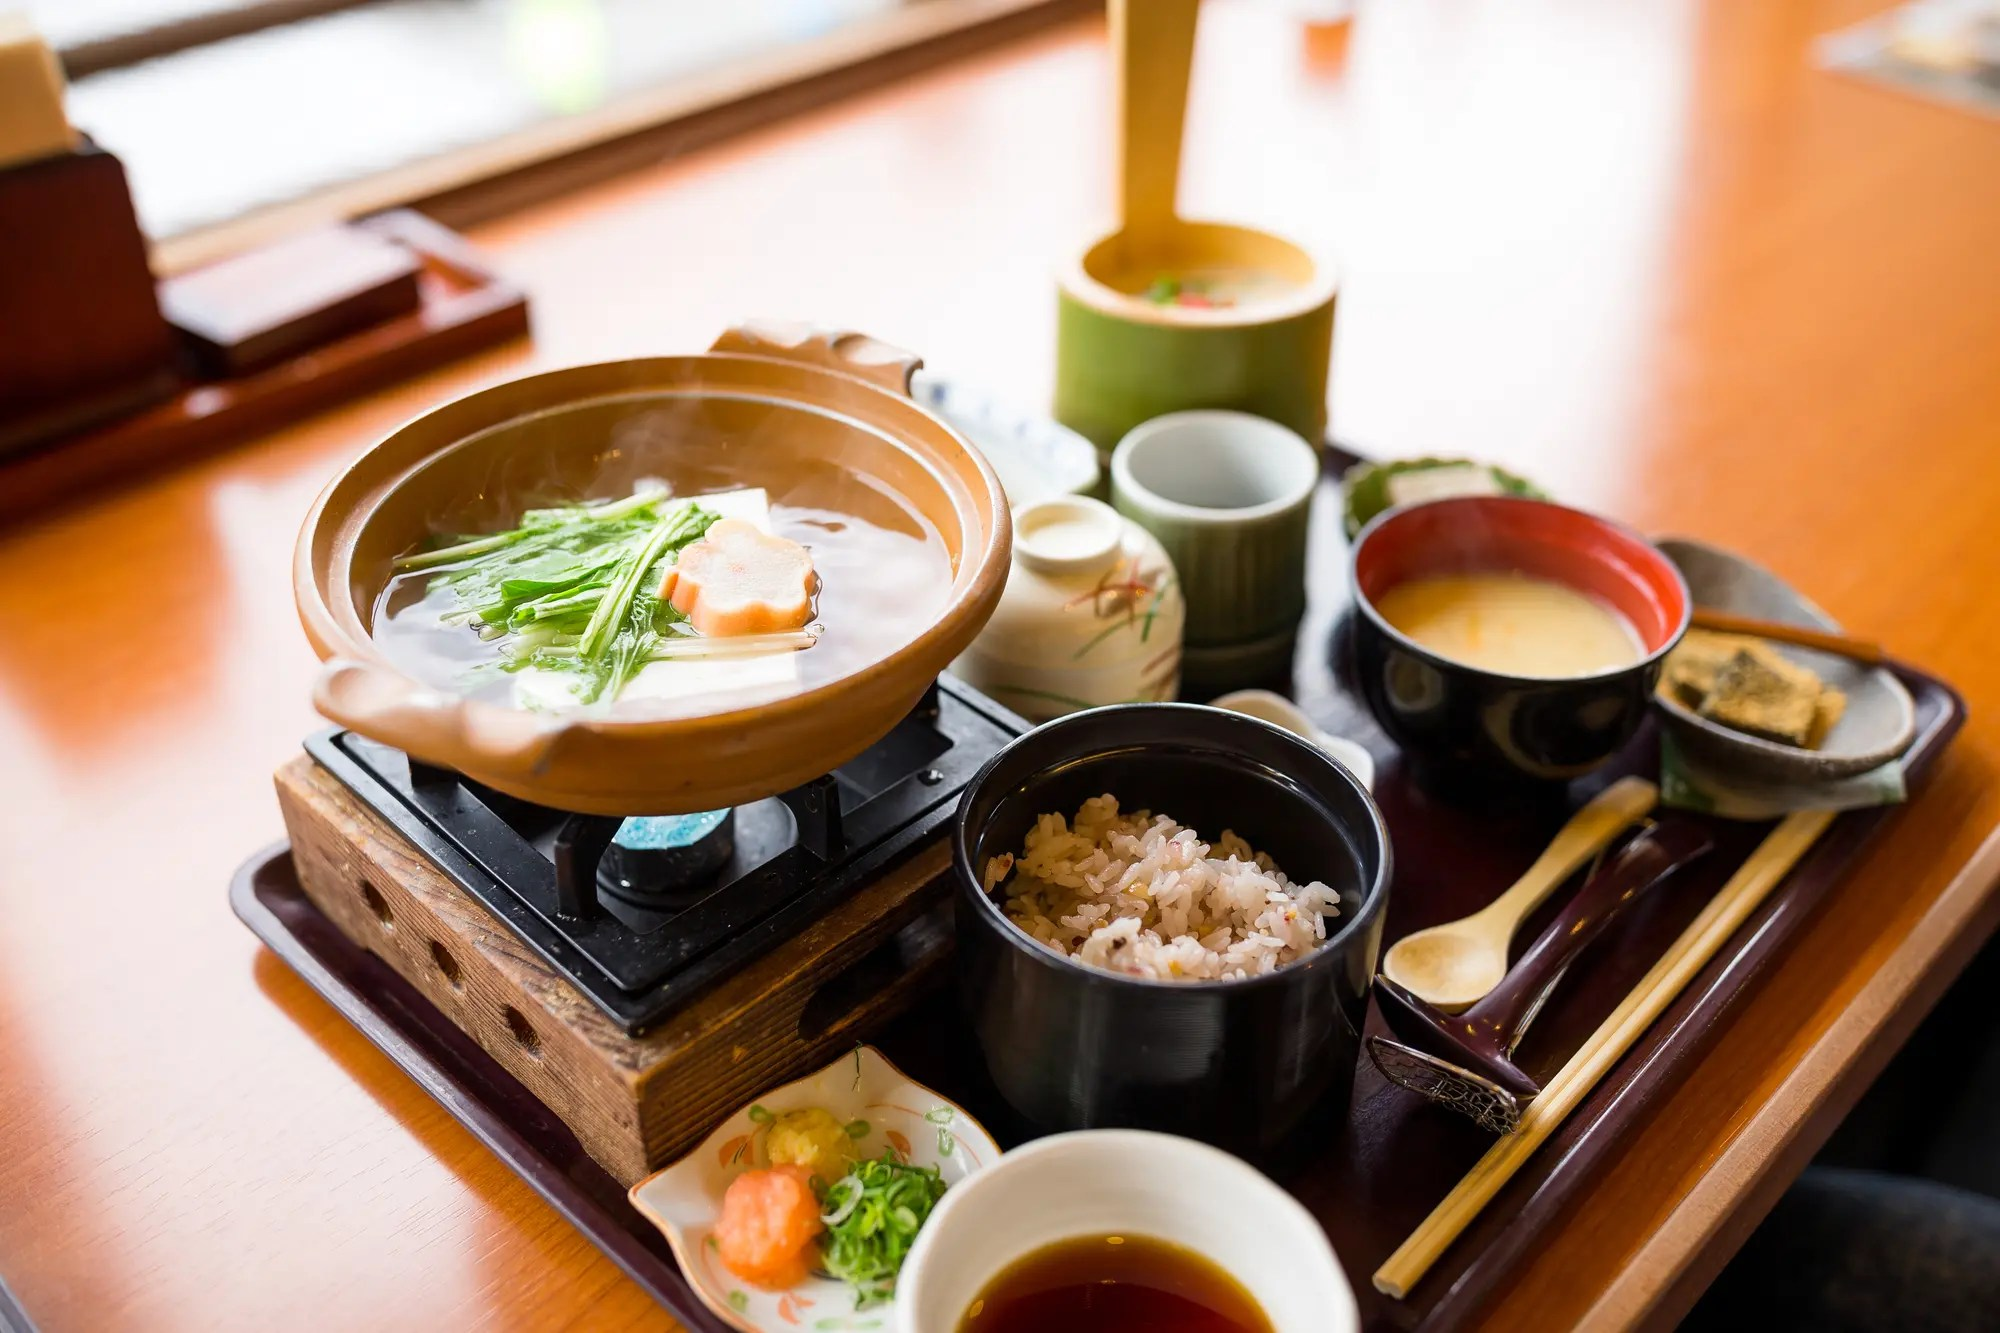 Hara Hachi Bu Enjoy Food And Lose Weight With This Simple Japanese Phrase